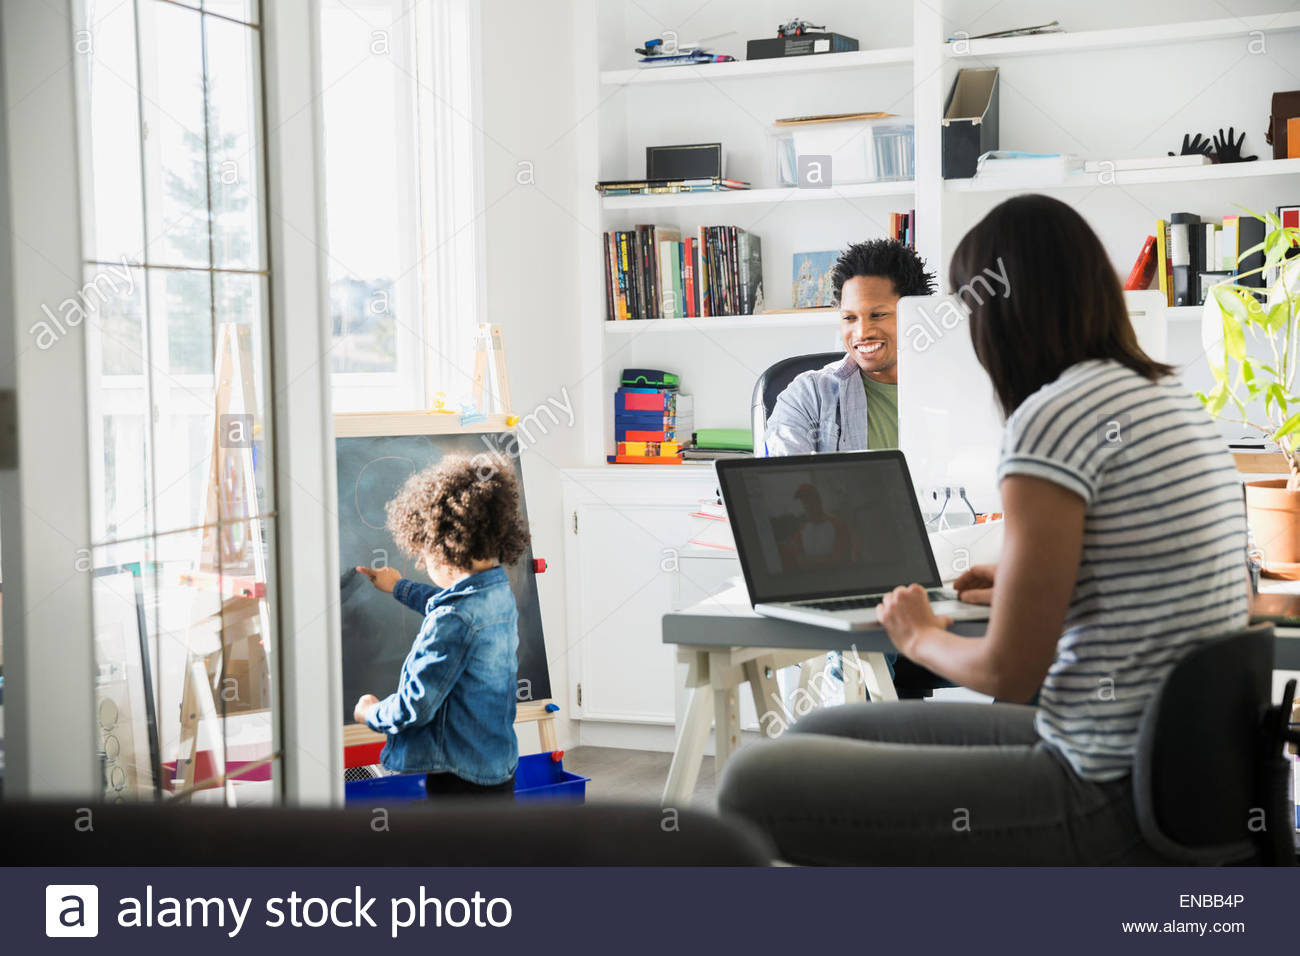 Parents working at computers with daughter playing nearby - Stock Image